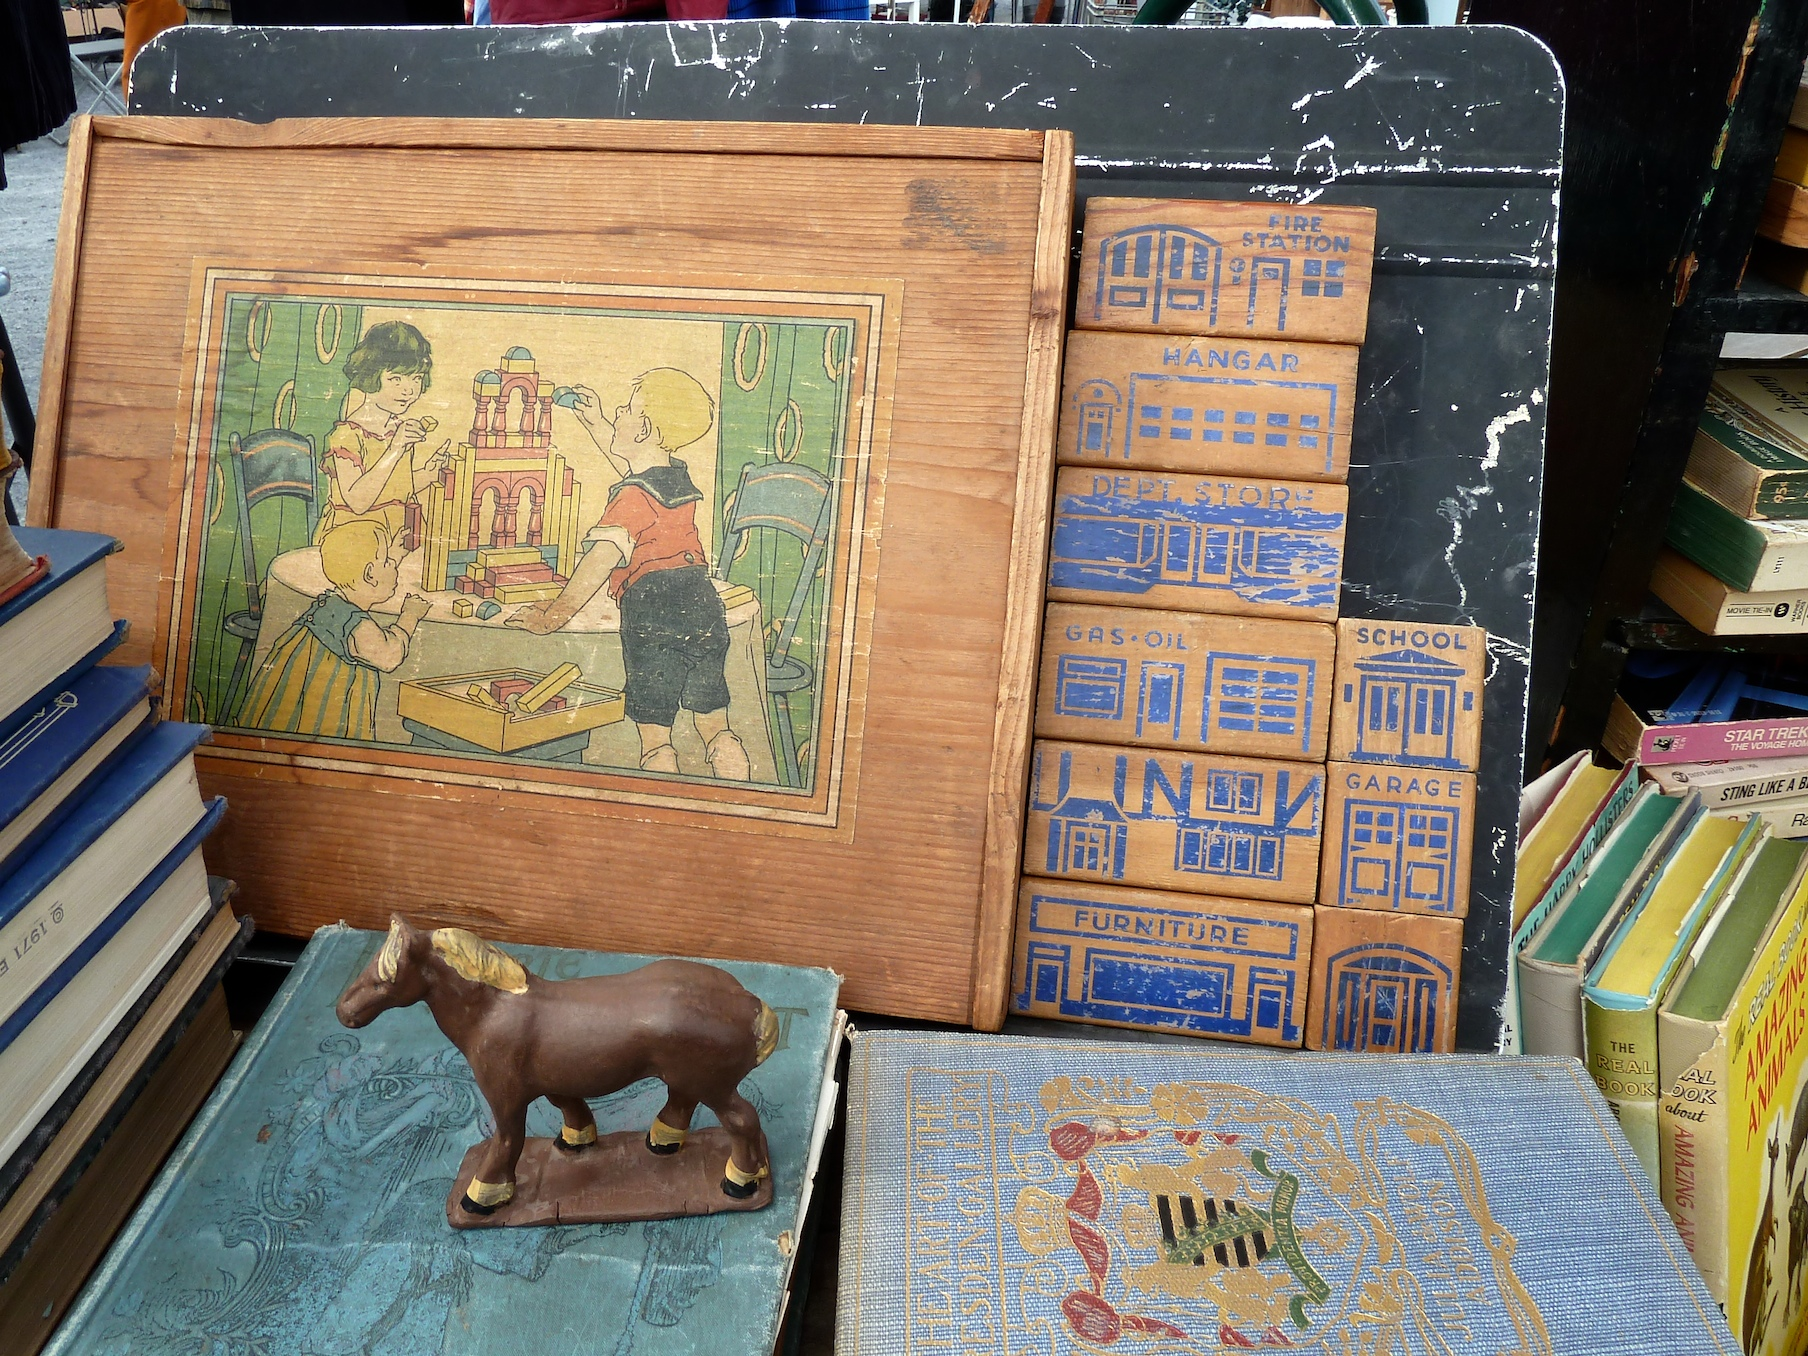 Vintage block toys at Brooklyn Flea market